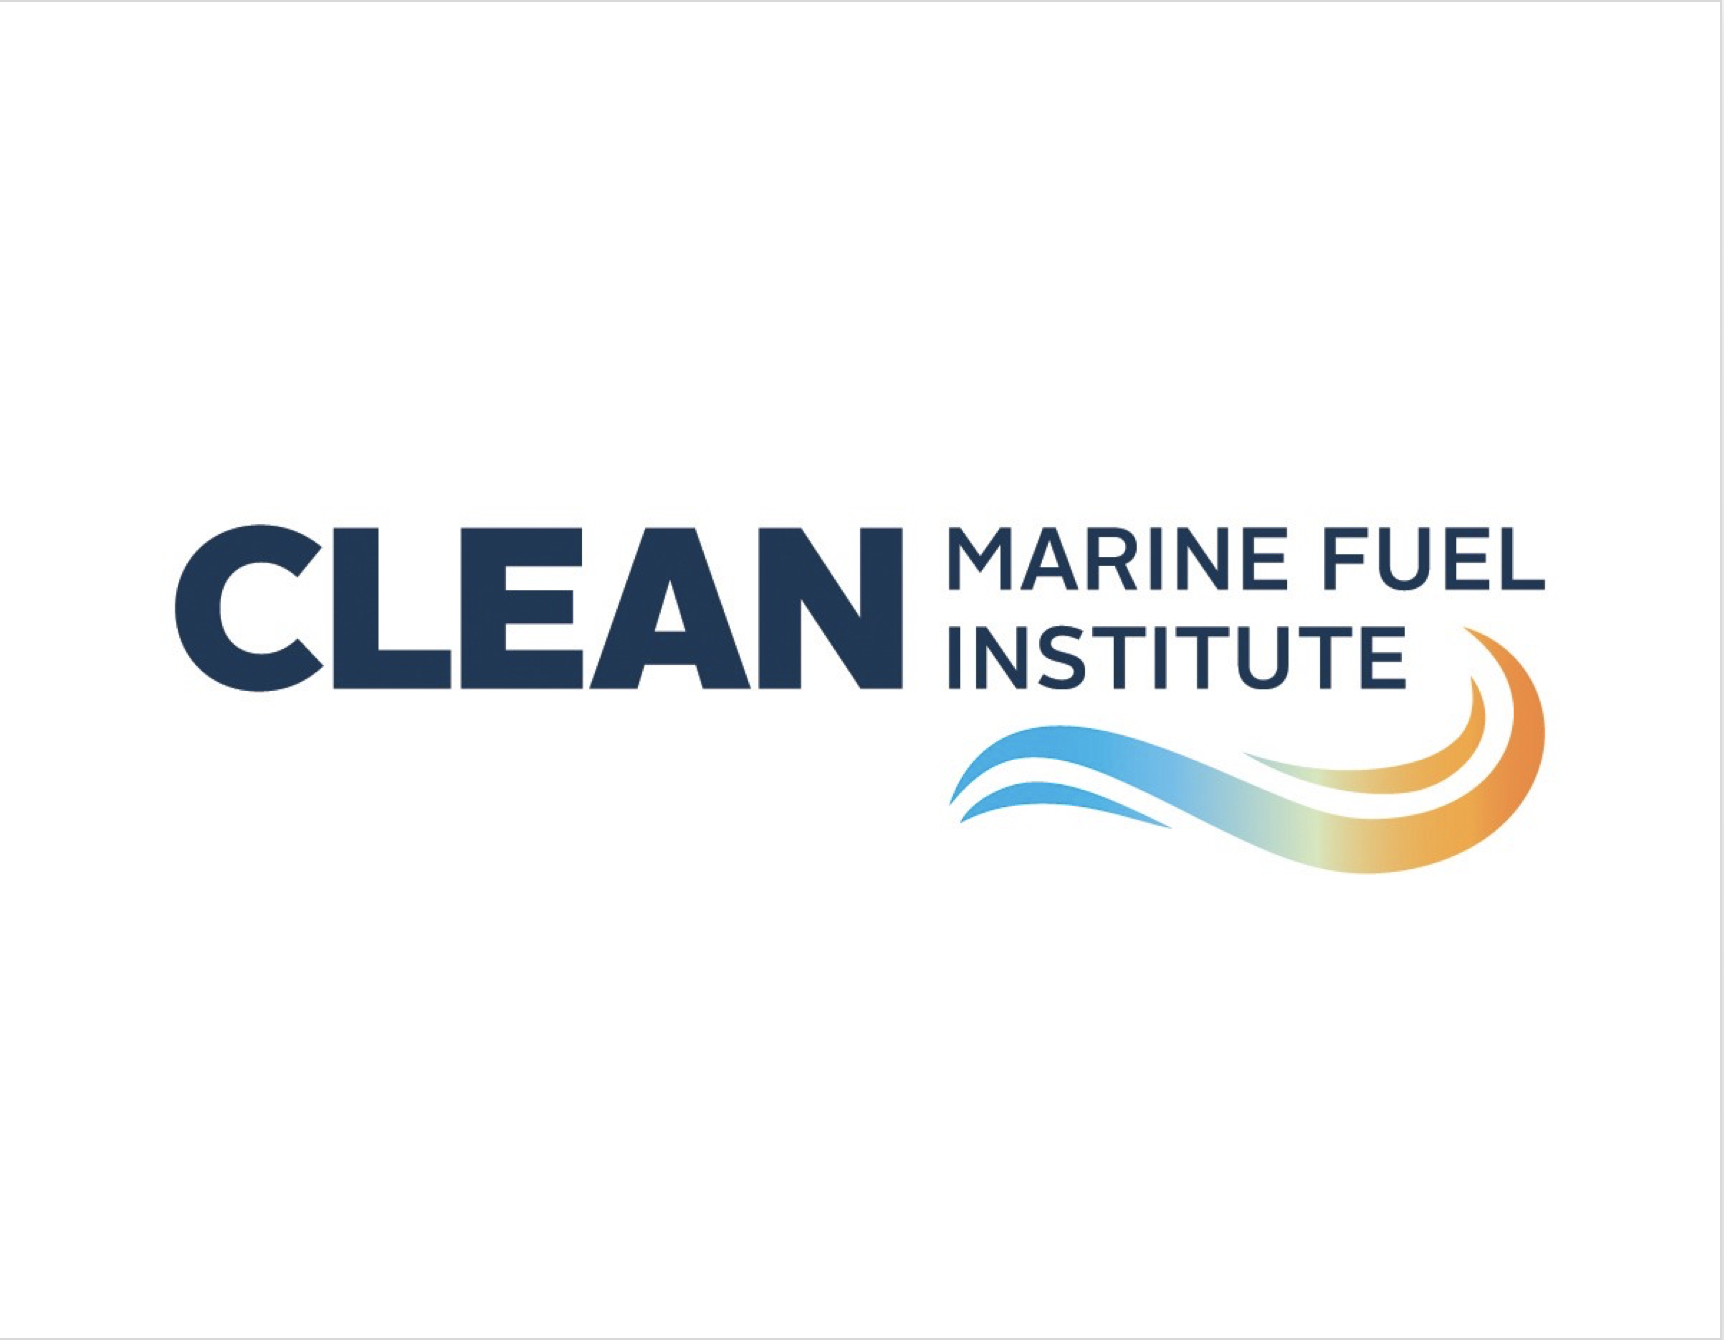 LNG Marine Fuel Institute changes name to Clean Marine Fuel Institute